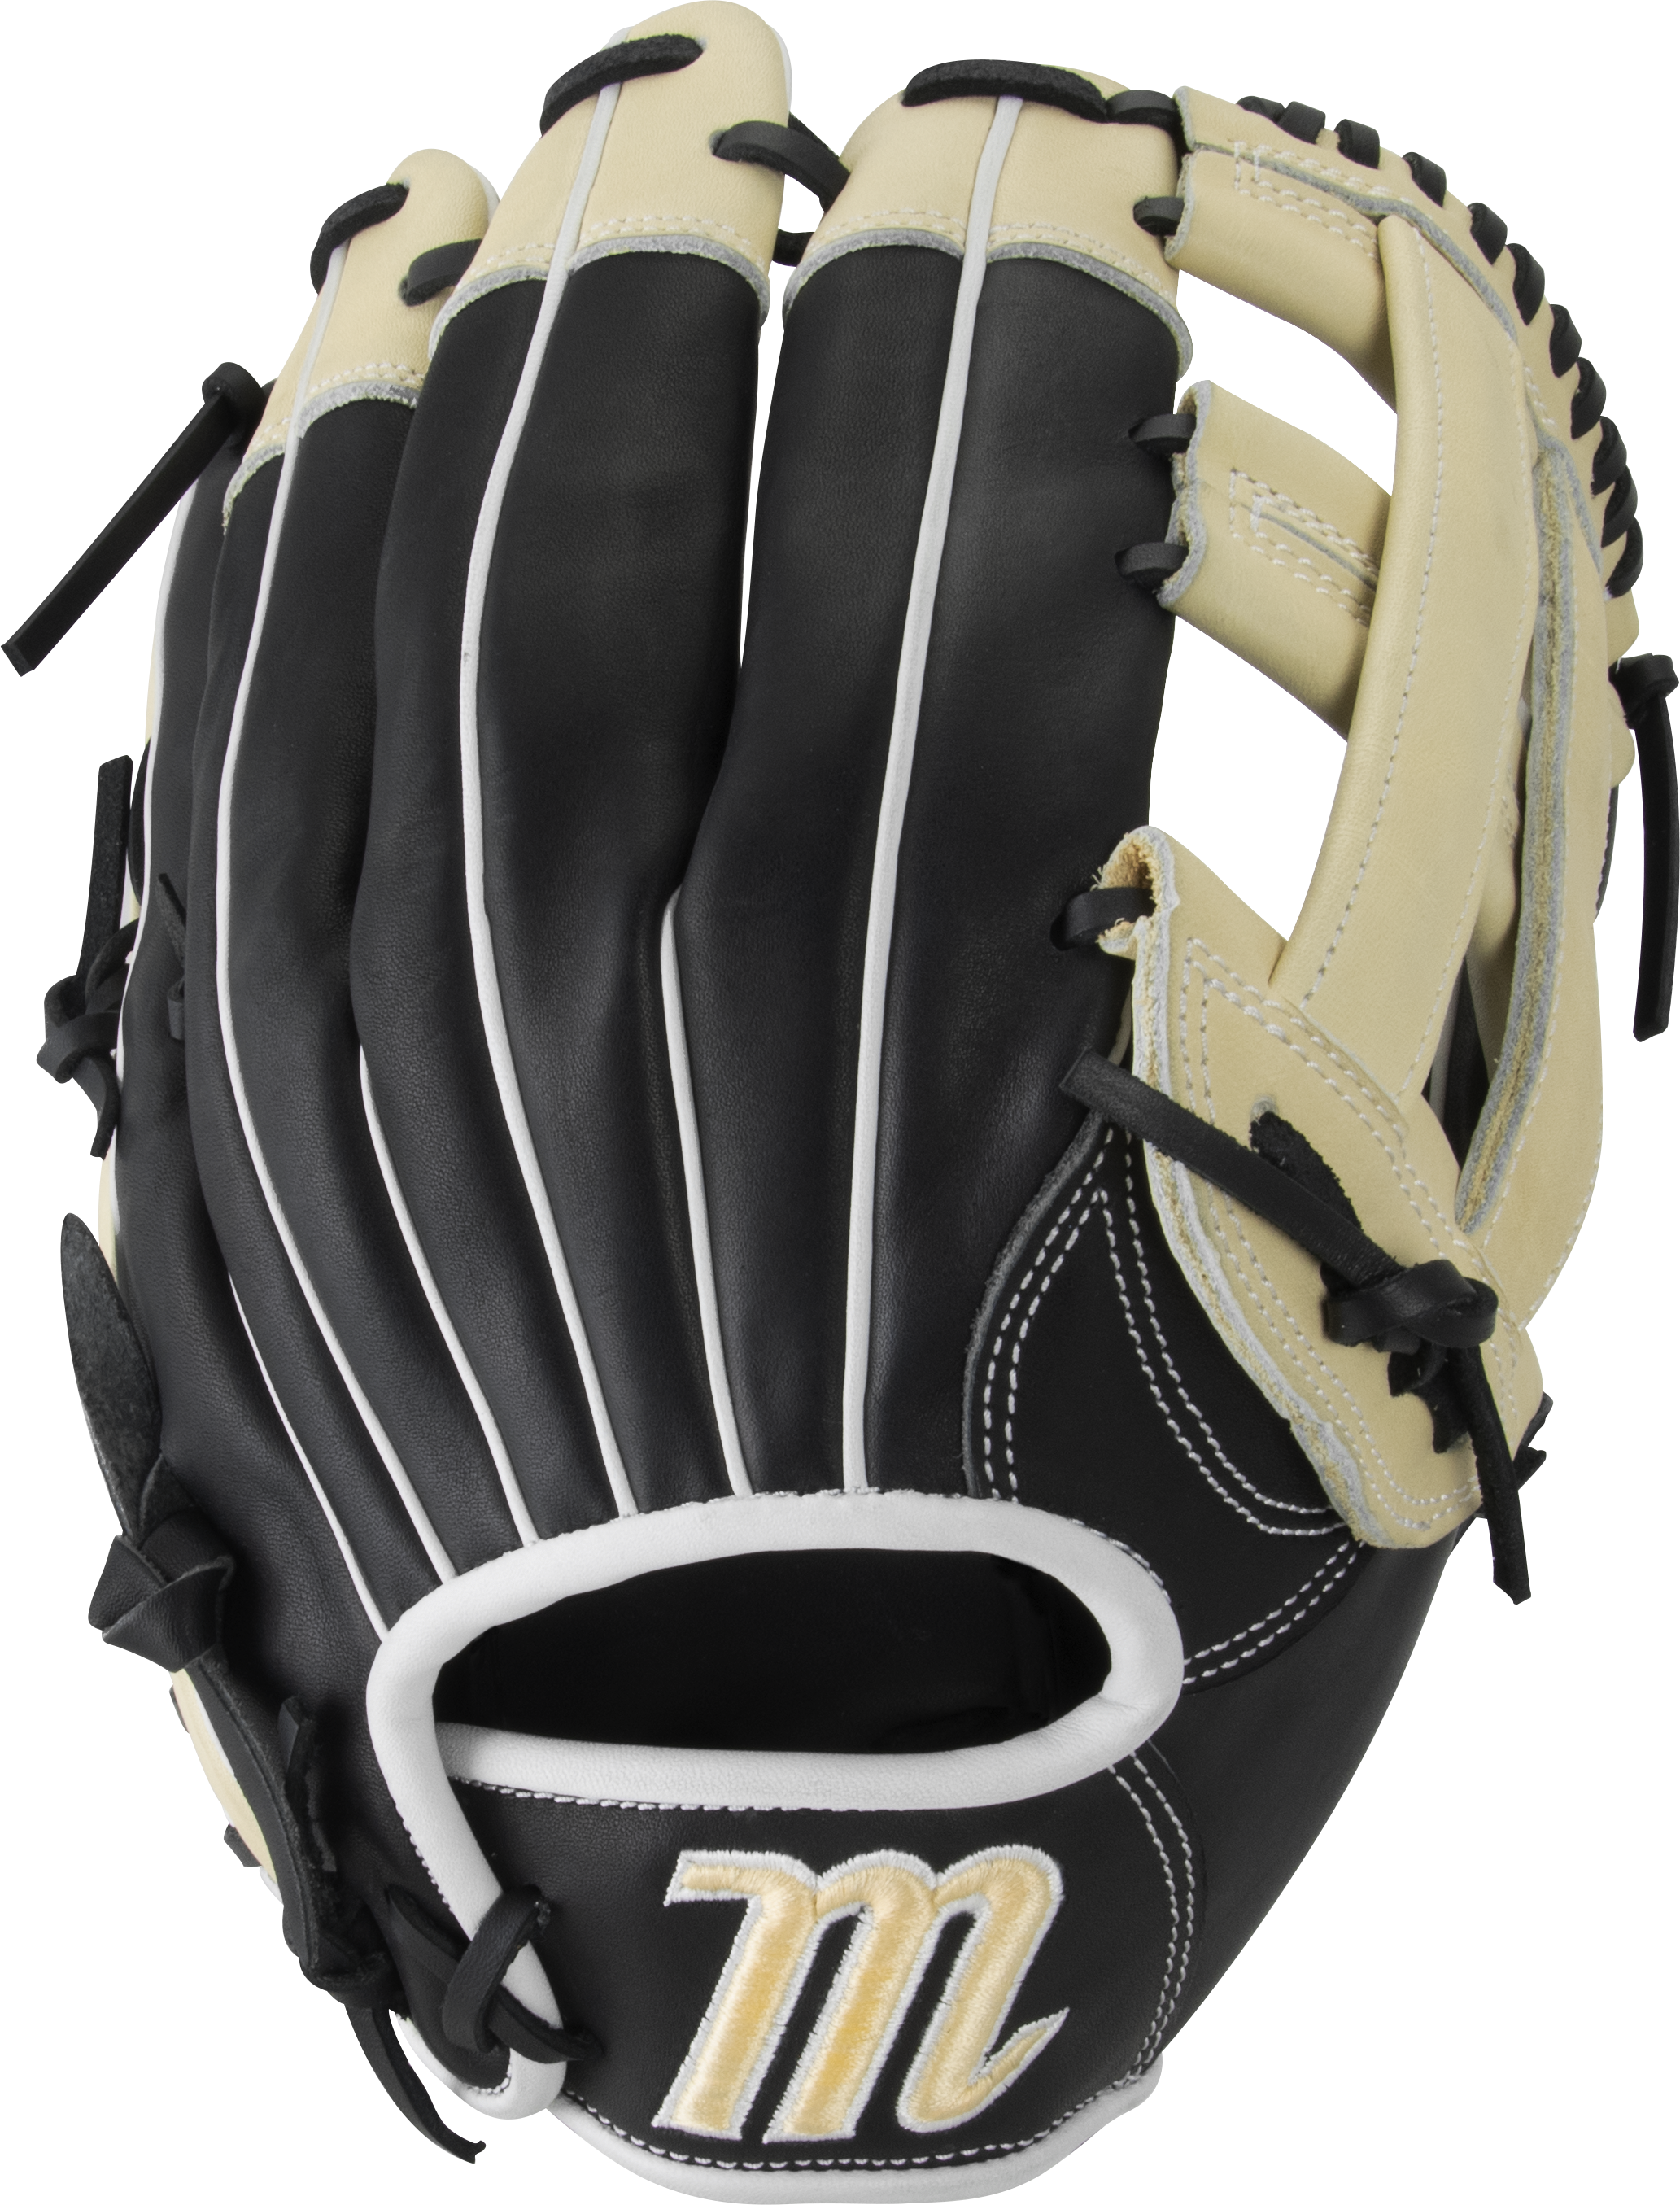 marucci-ascension-as125y-baseball-glove-12-5-h-web-right-hand-throw MFGAS125Y-BKCM-RightHandThrow Marucci 849817099582 Tight-grain steerhide shell leather and palm lining increases durability while reducing